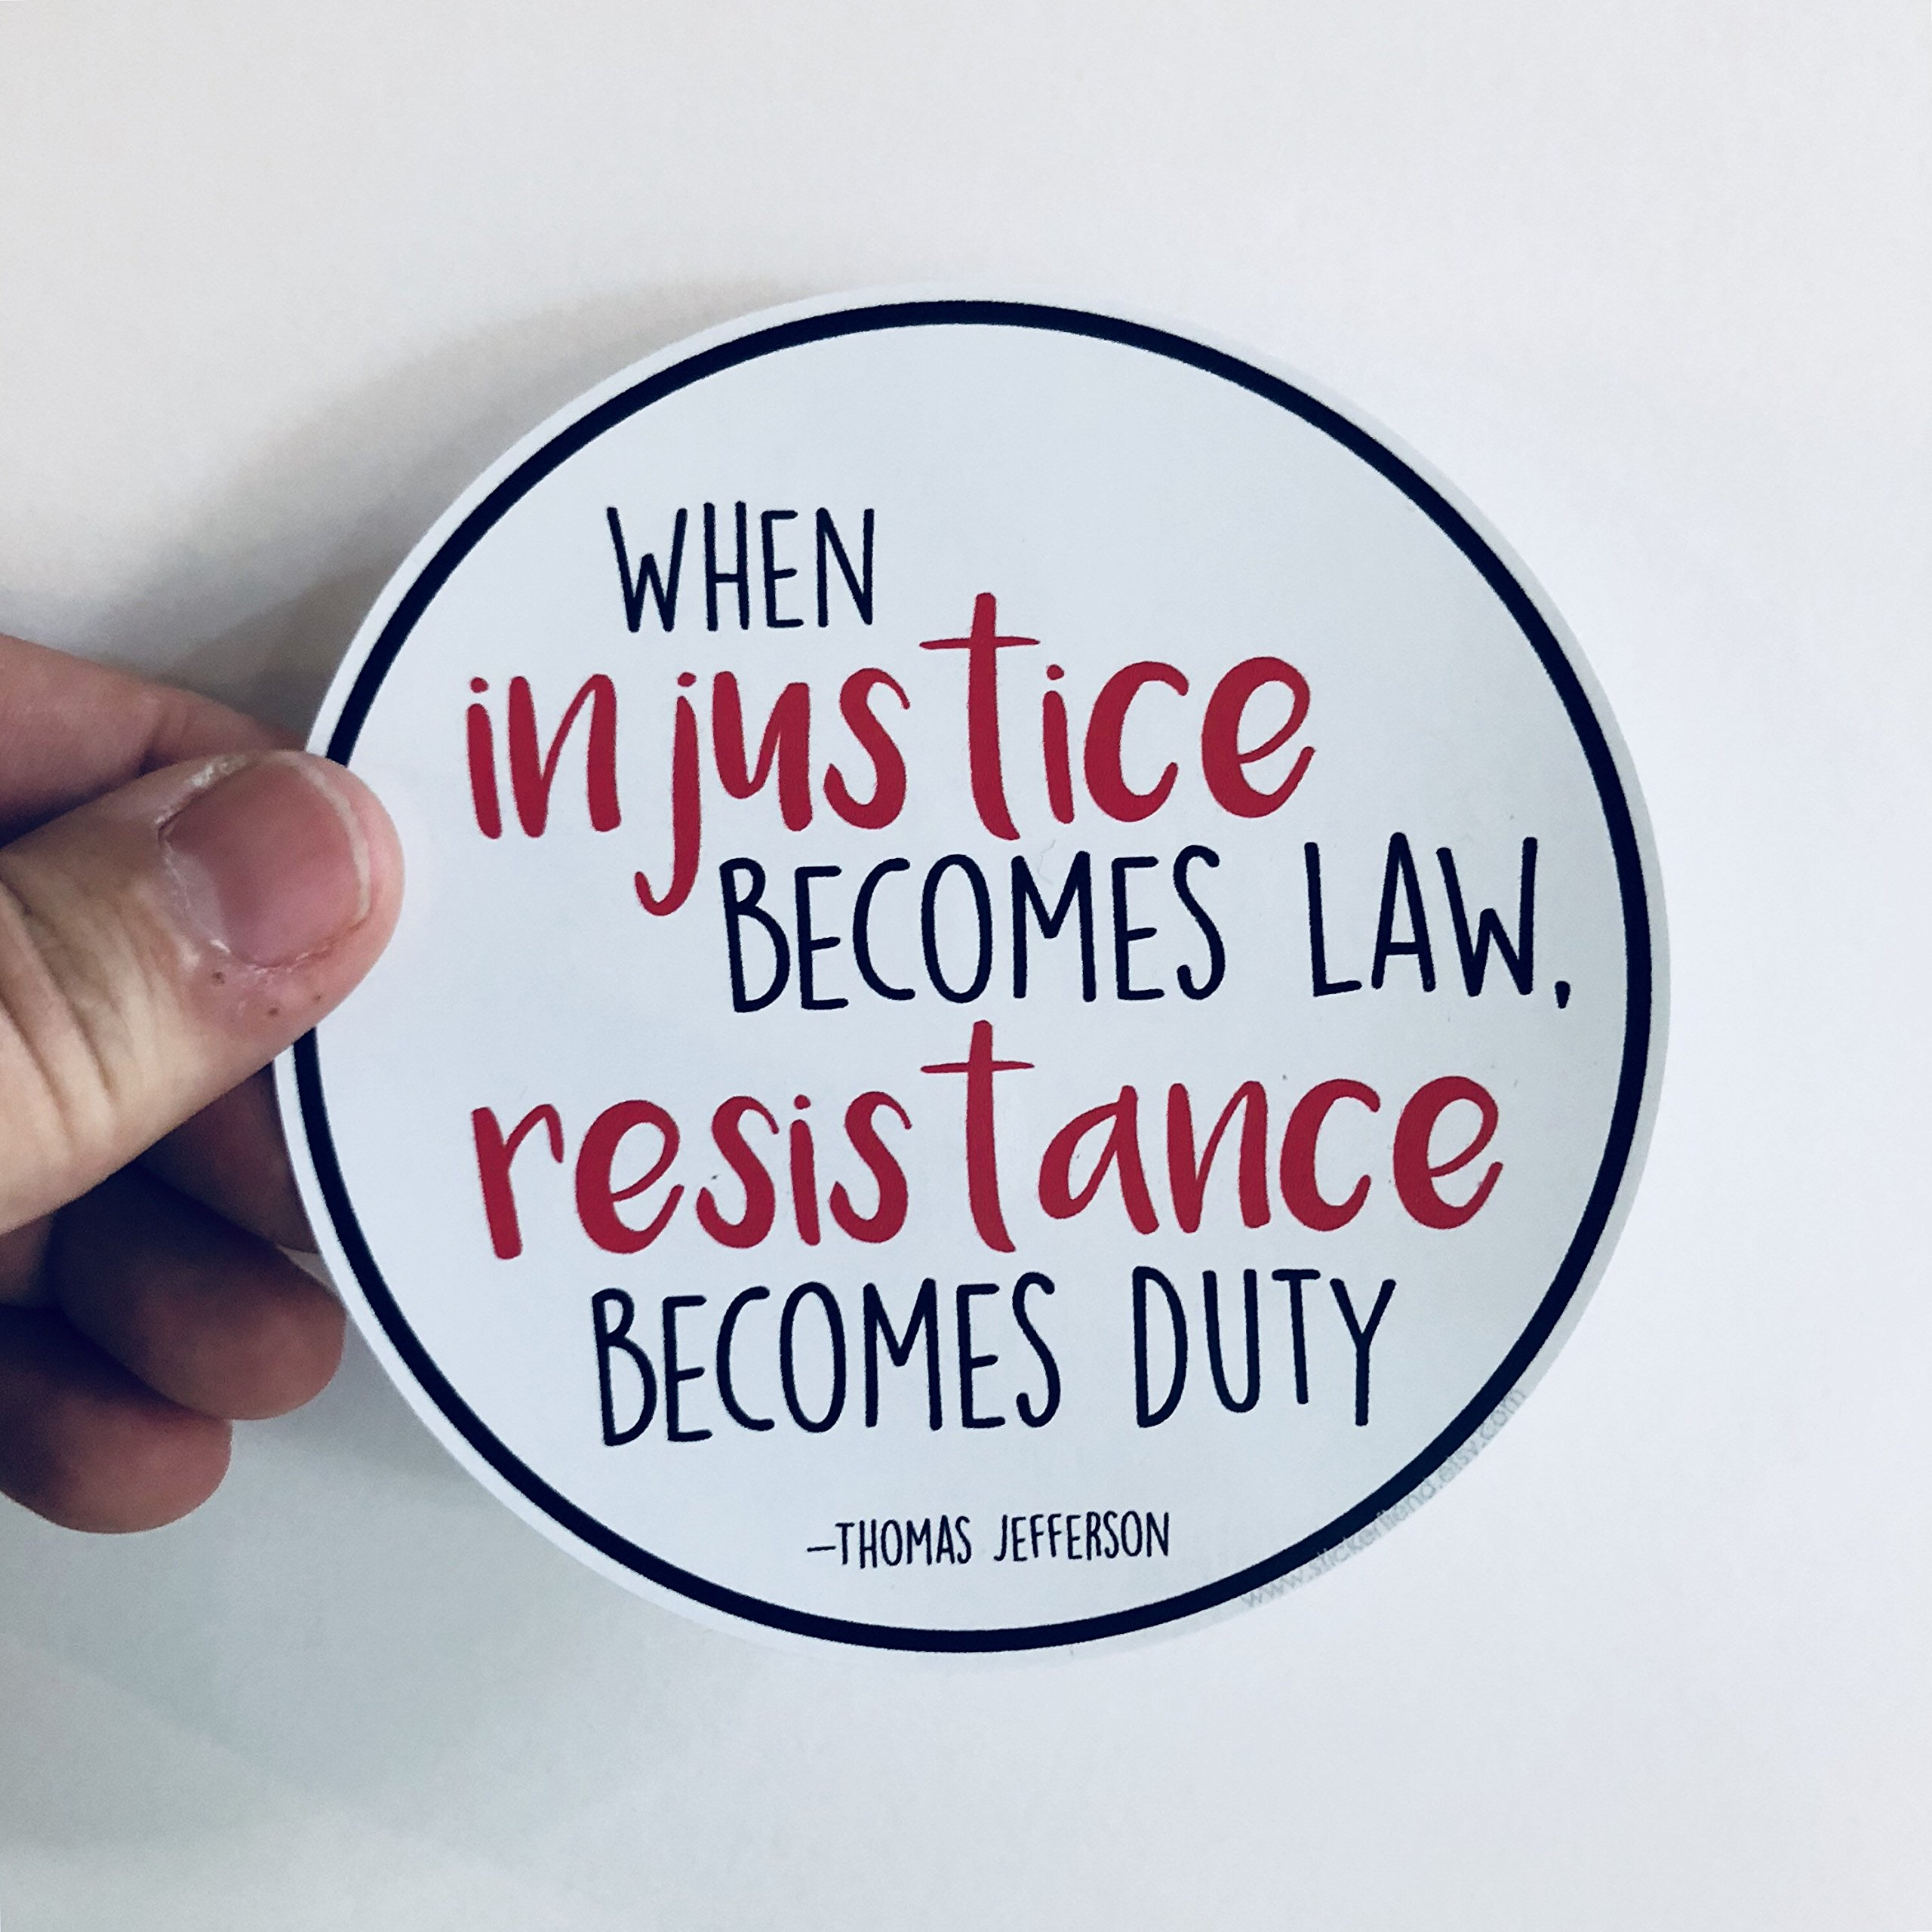 when injustice becomes law resistance becomes duty Thomas Jefferson quote resist vinyl bumper sticker by Decals